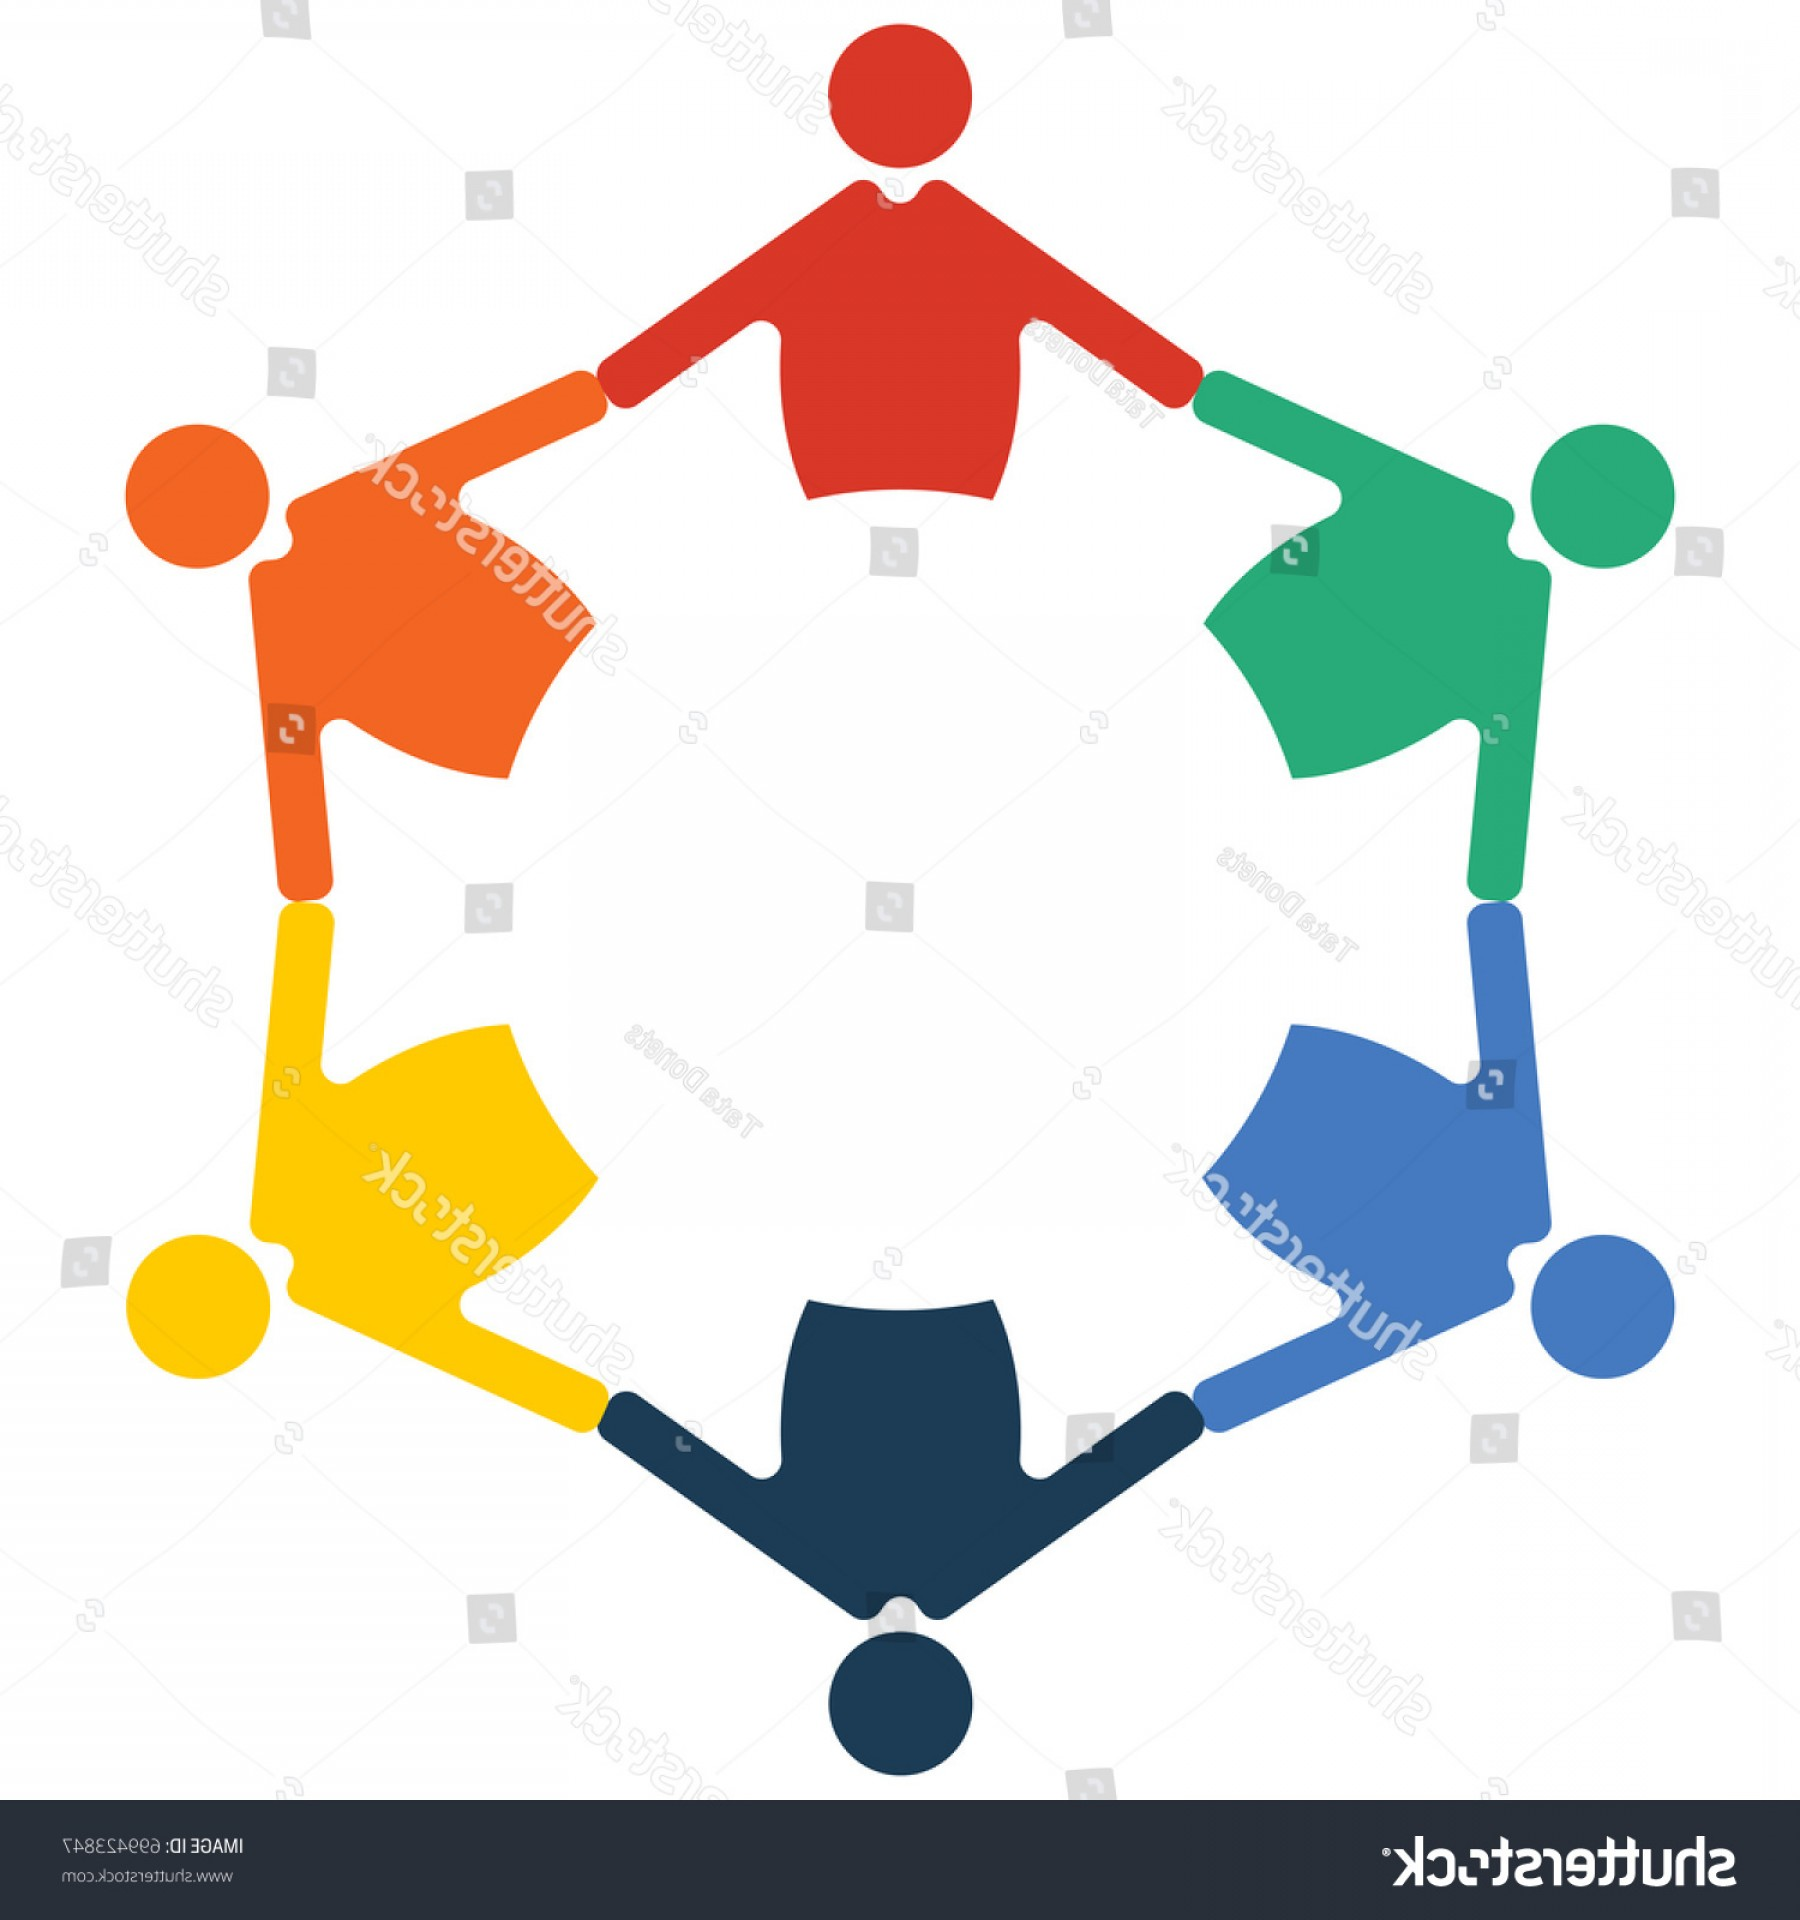 Family Reunion Vector Symbol: Family Reunion Diversity Group Community Round